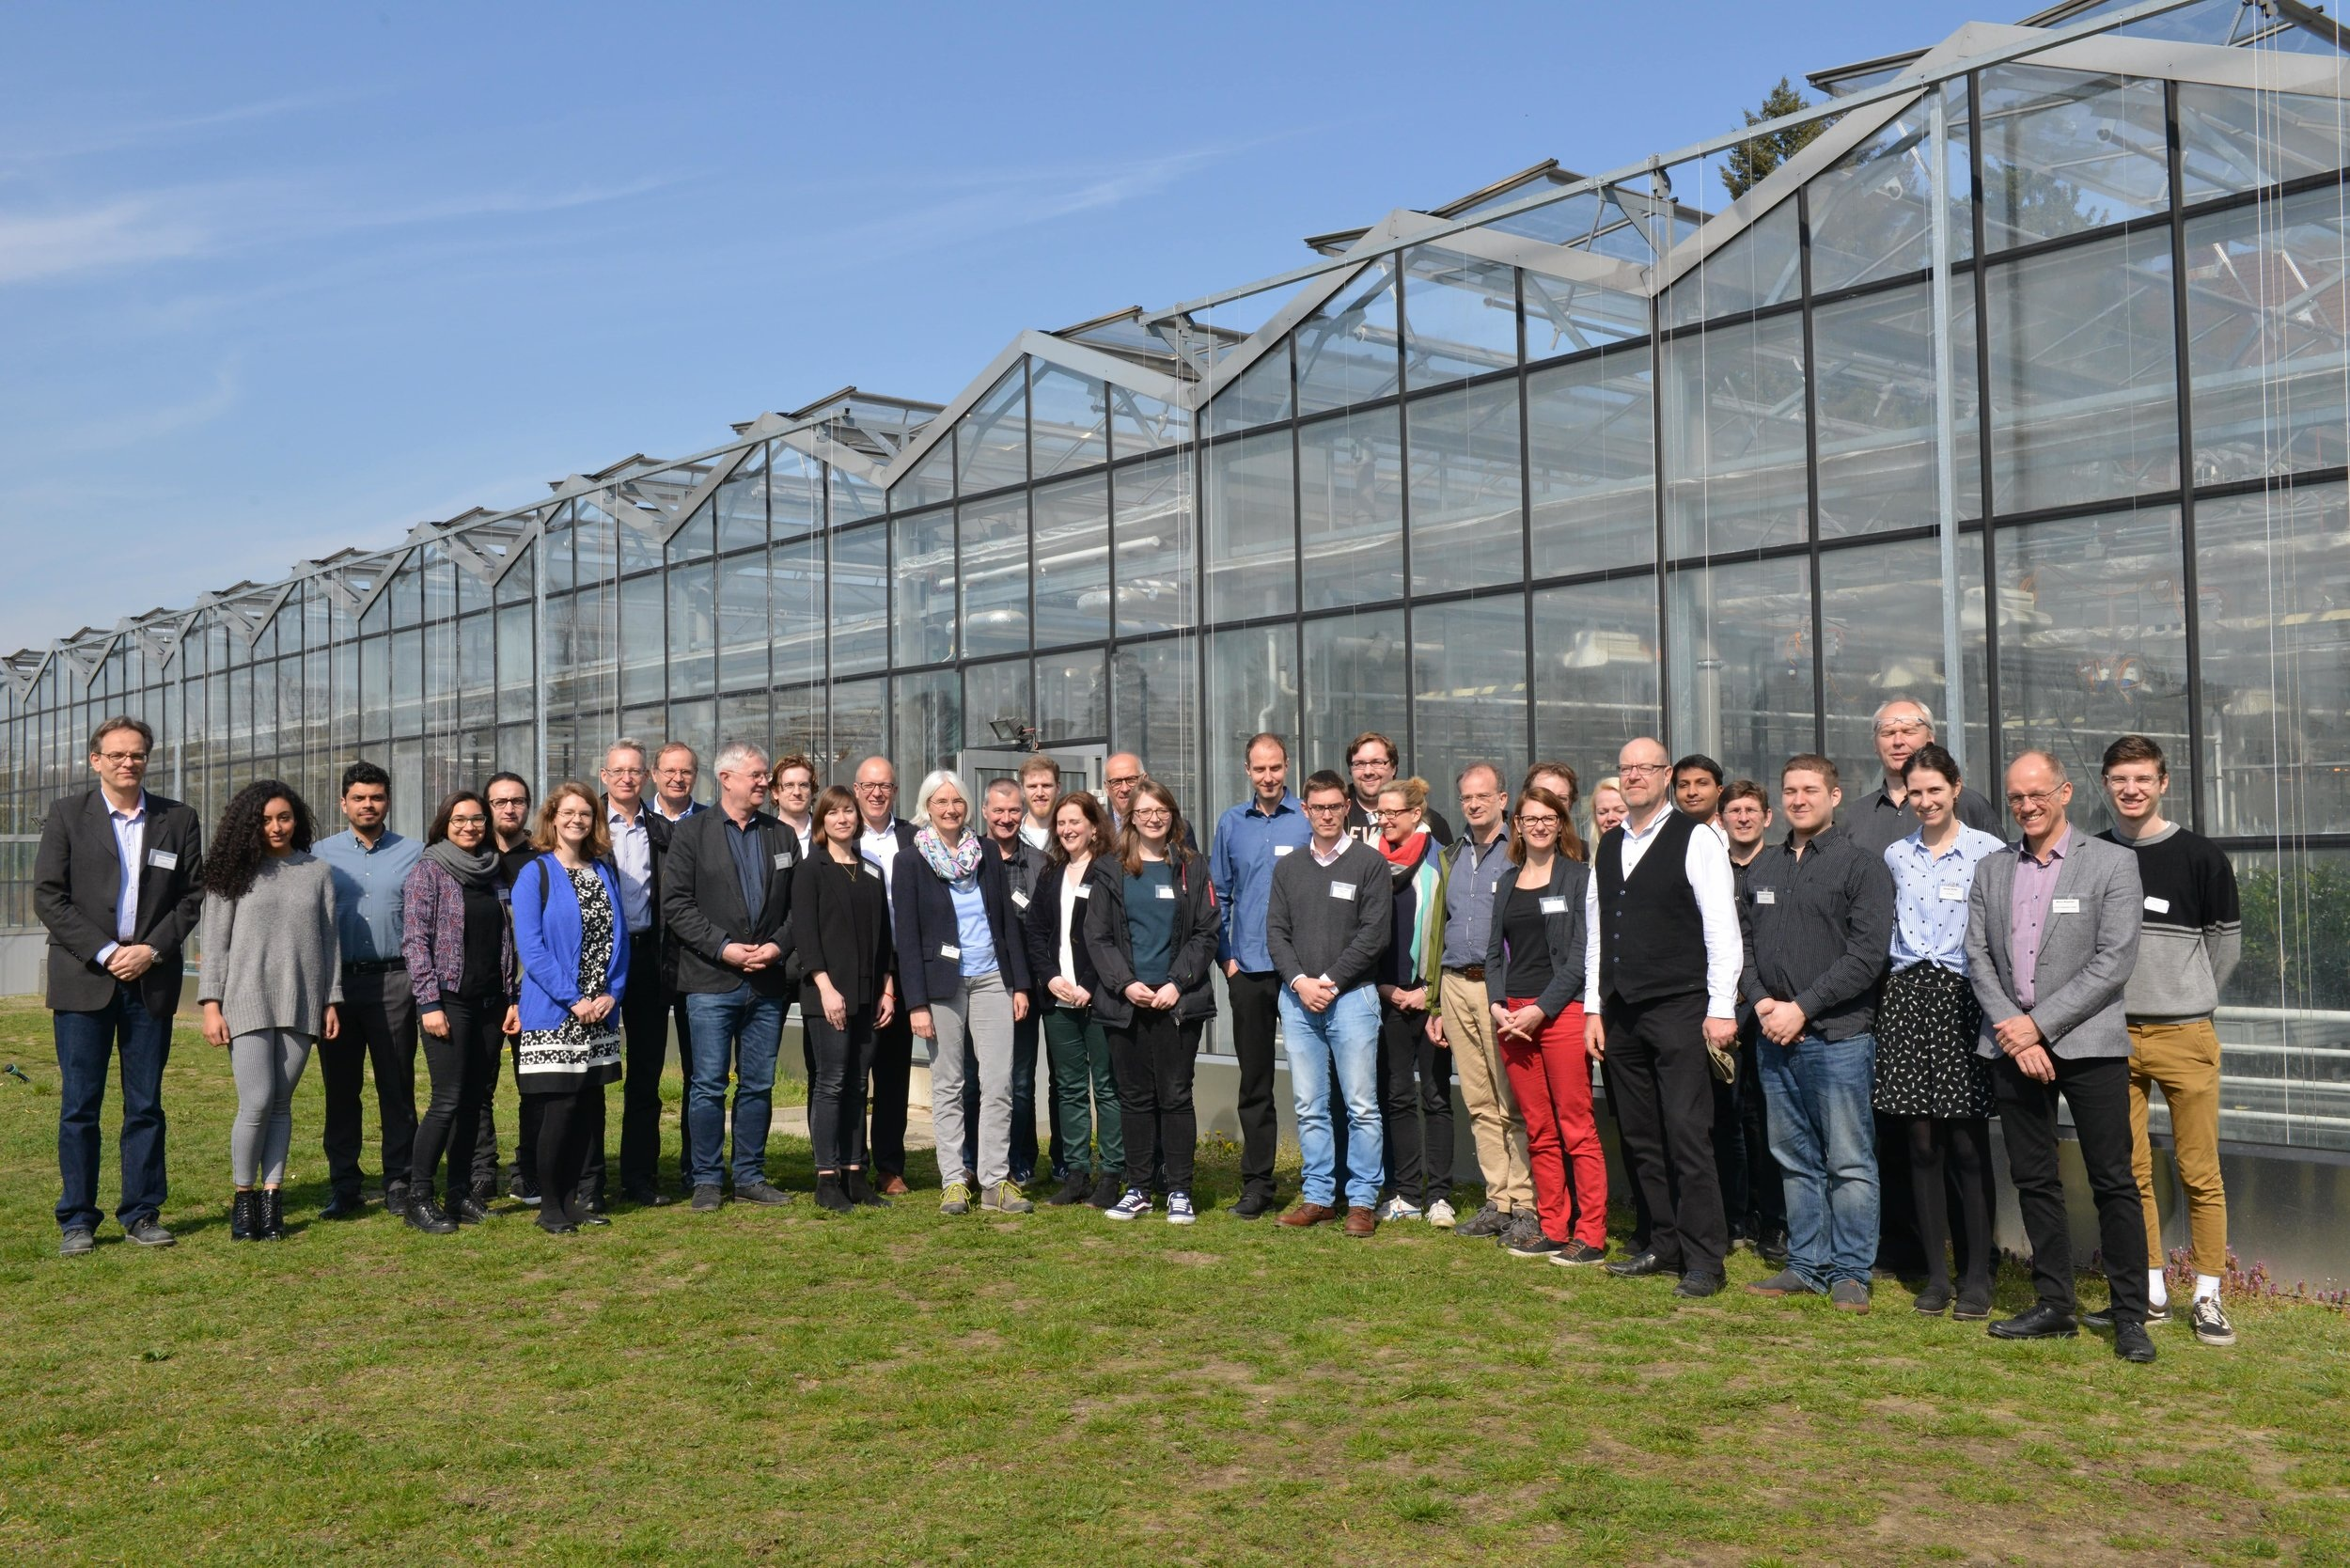 CUBES Circle Workshop - April 3rd until 5th 2019 the scientists, the partners from the private sector and the advisory board of CUBES Circle met up in Berlin Dahlem for an opening workshop.